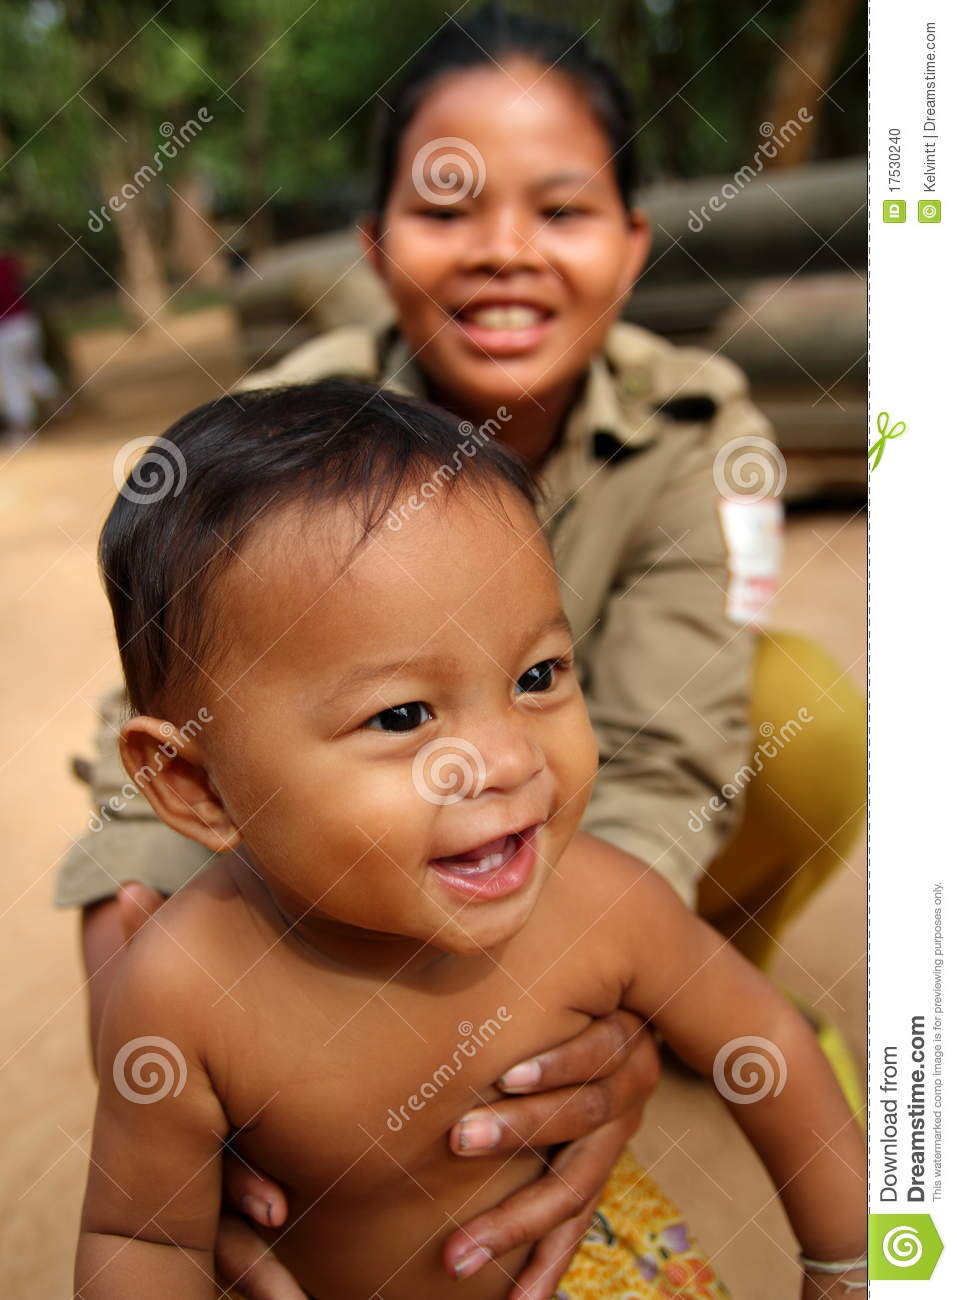 Naked cambodian kids Happy Cambodian Kid Editorial Image